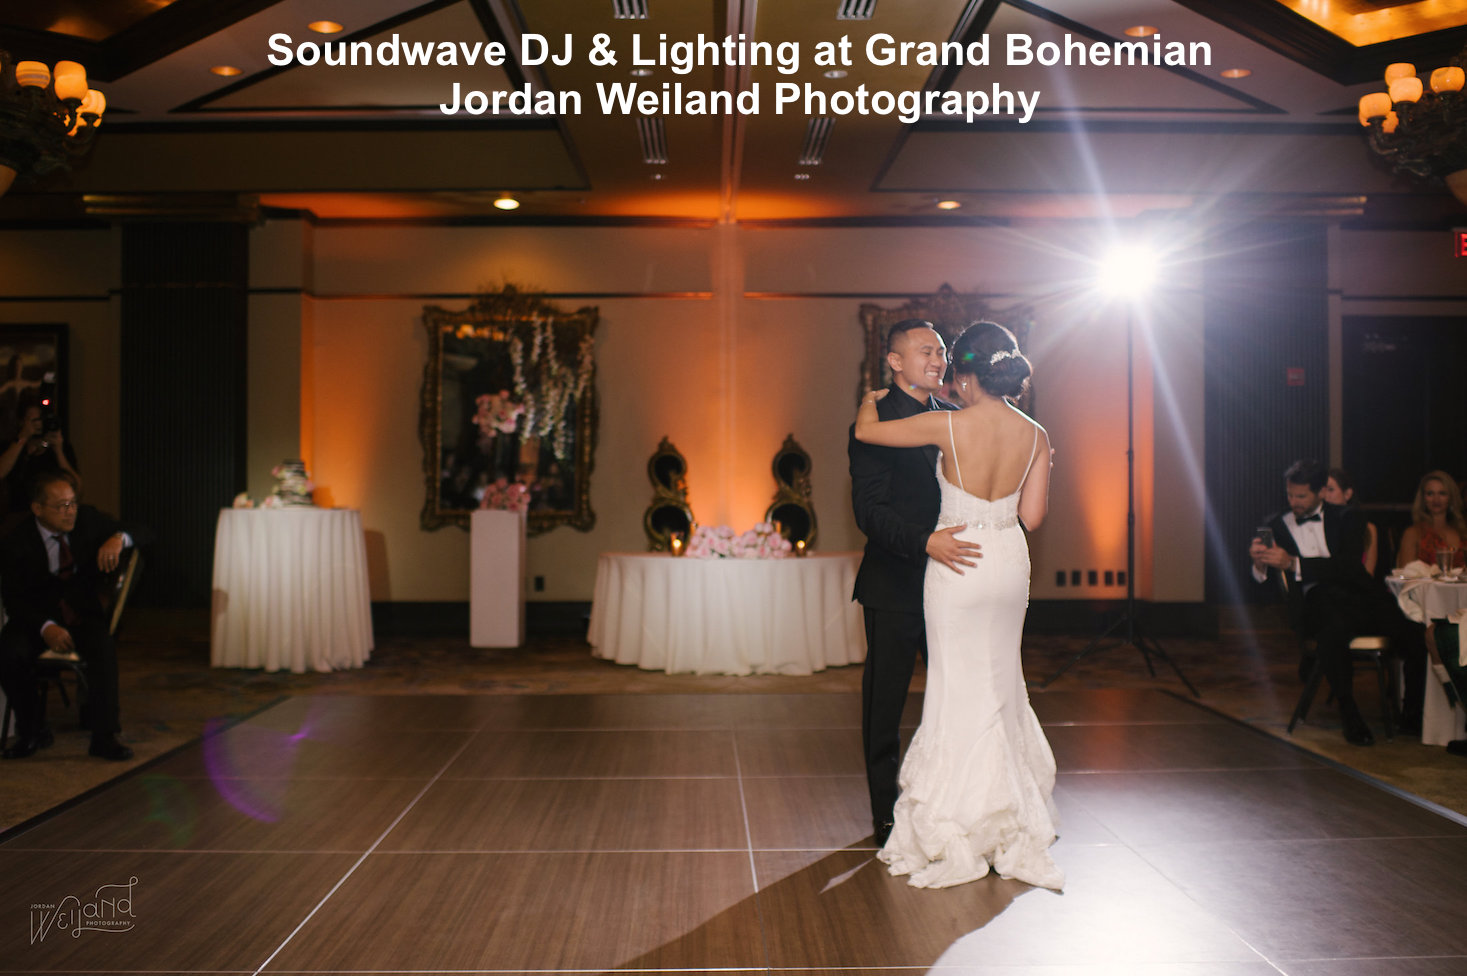 soundwave entertainment - wedding blog - grand bohemian - orlando, fl